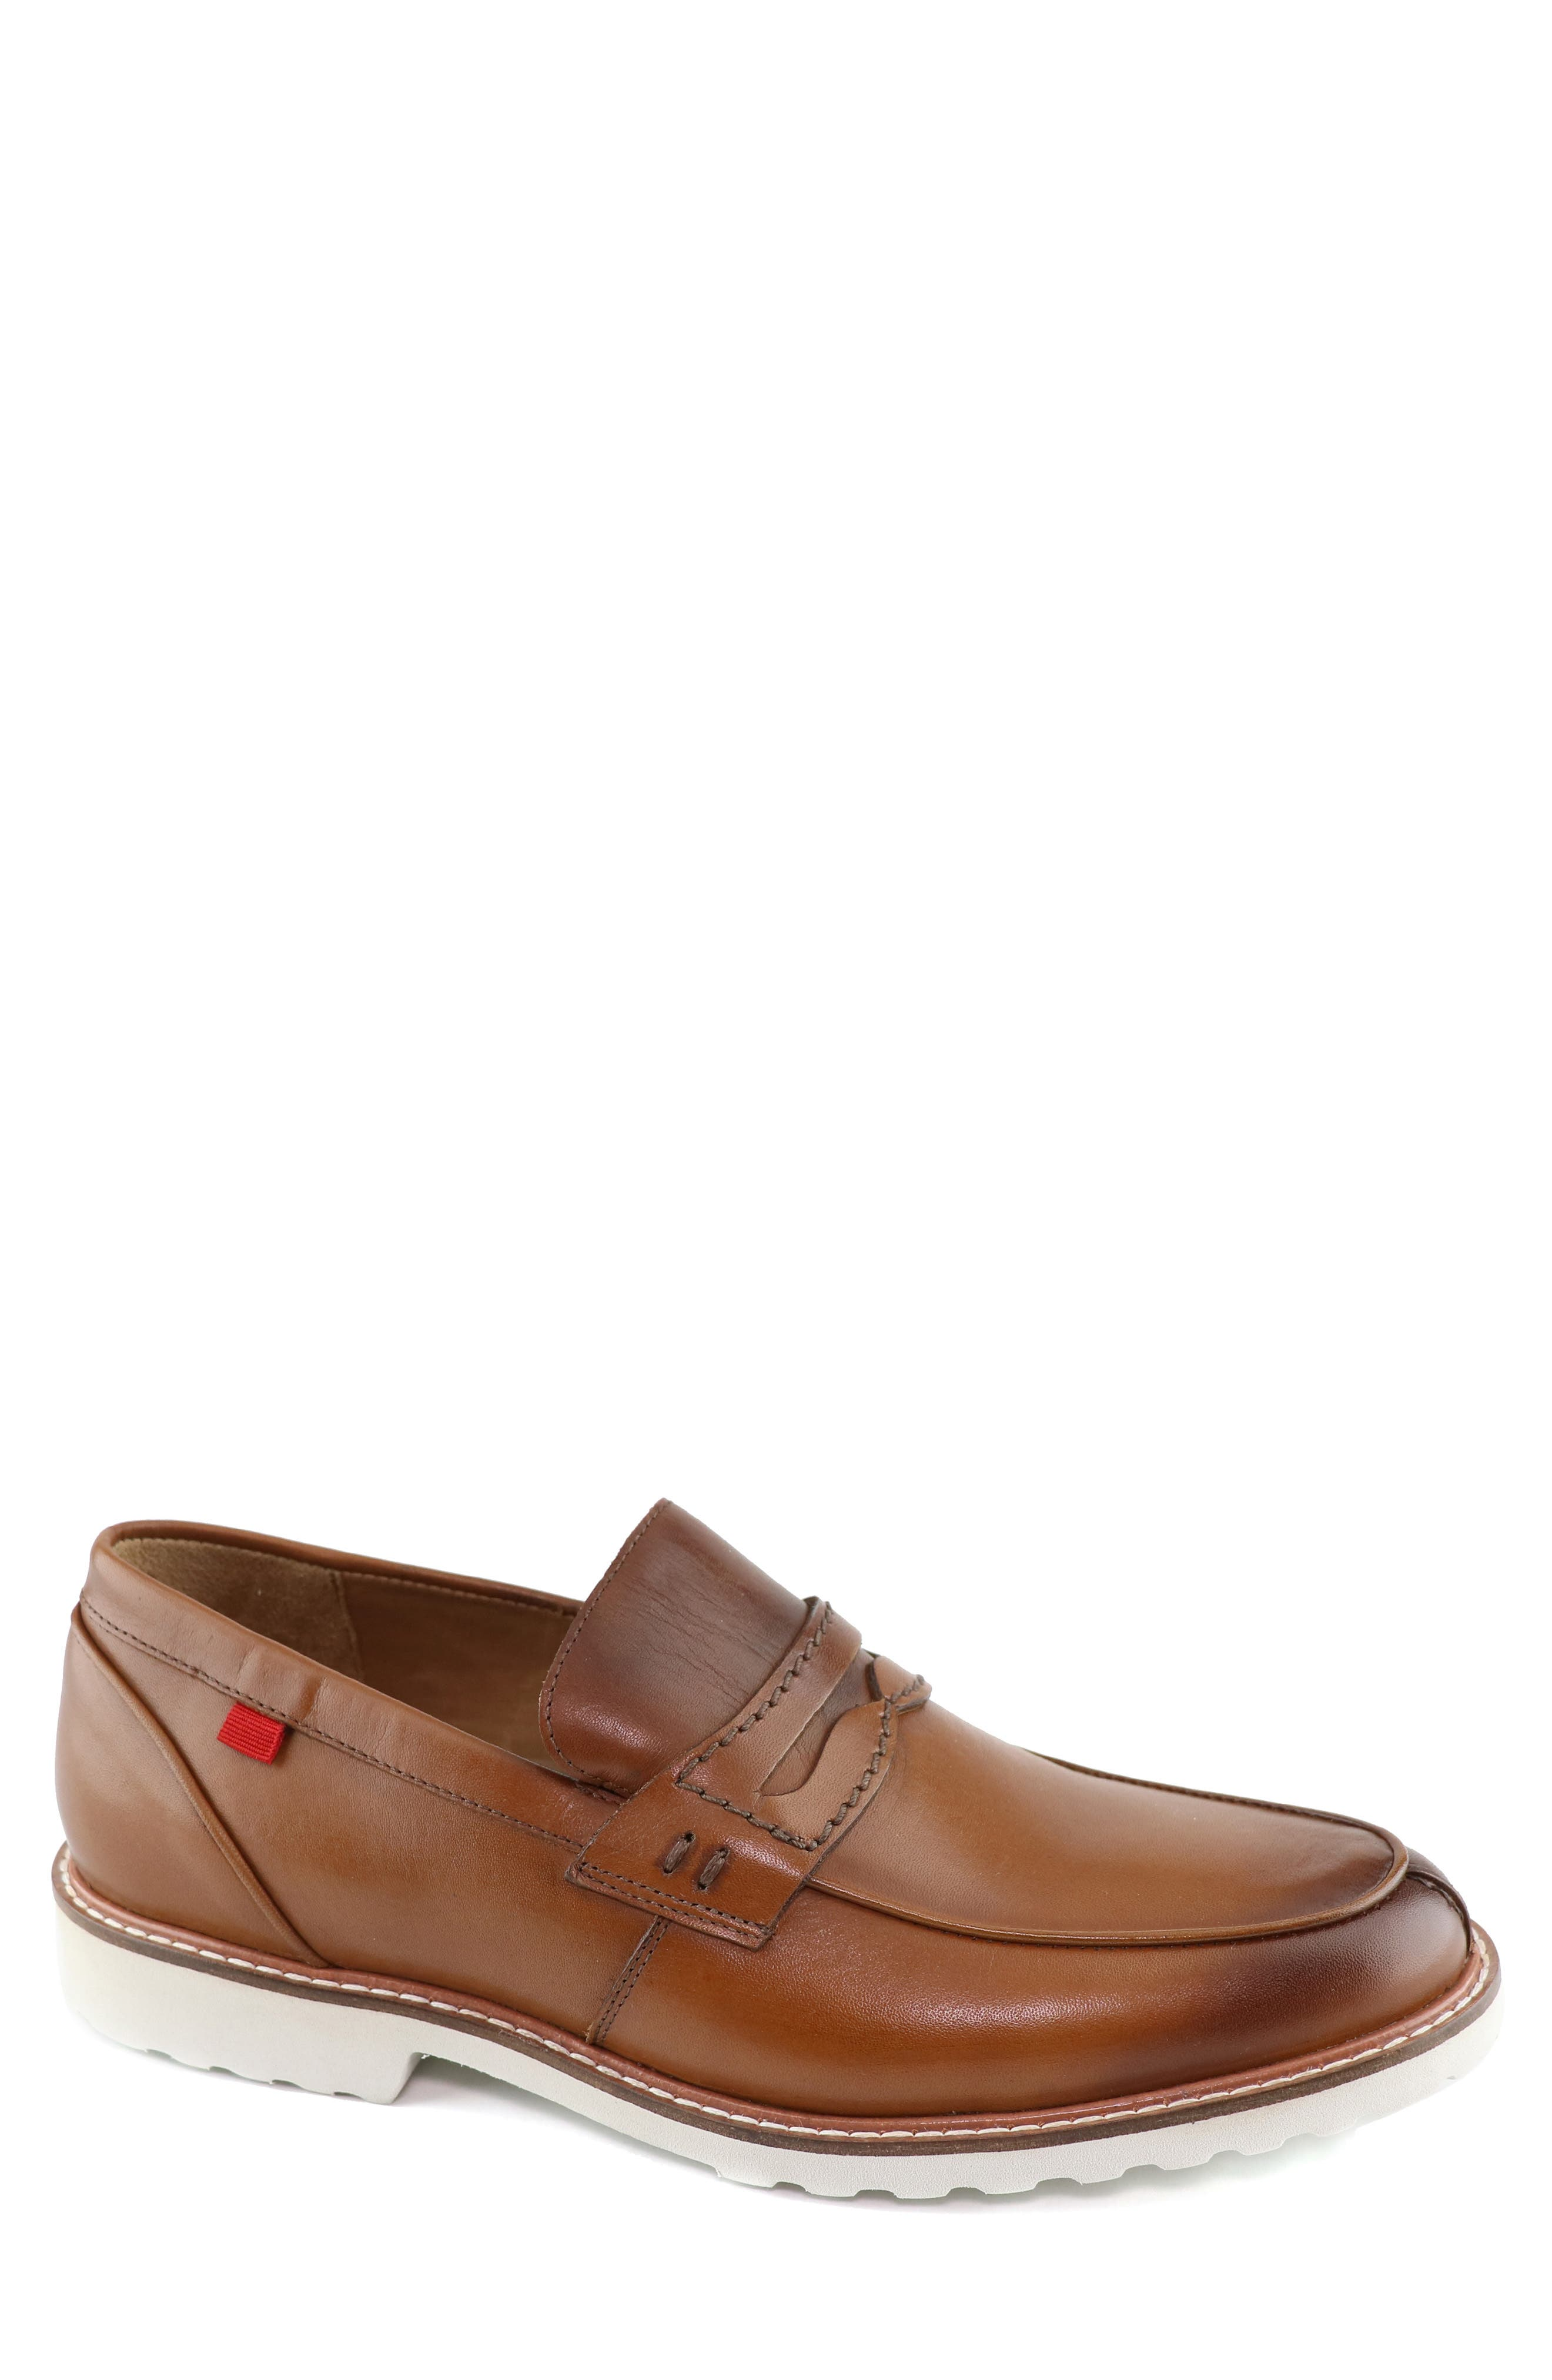 Williamsburg Penny Loafer